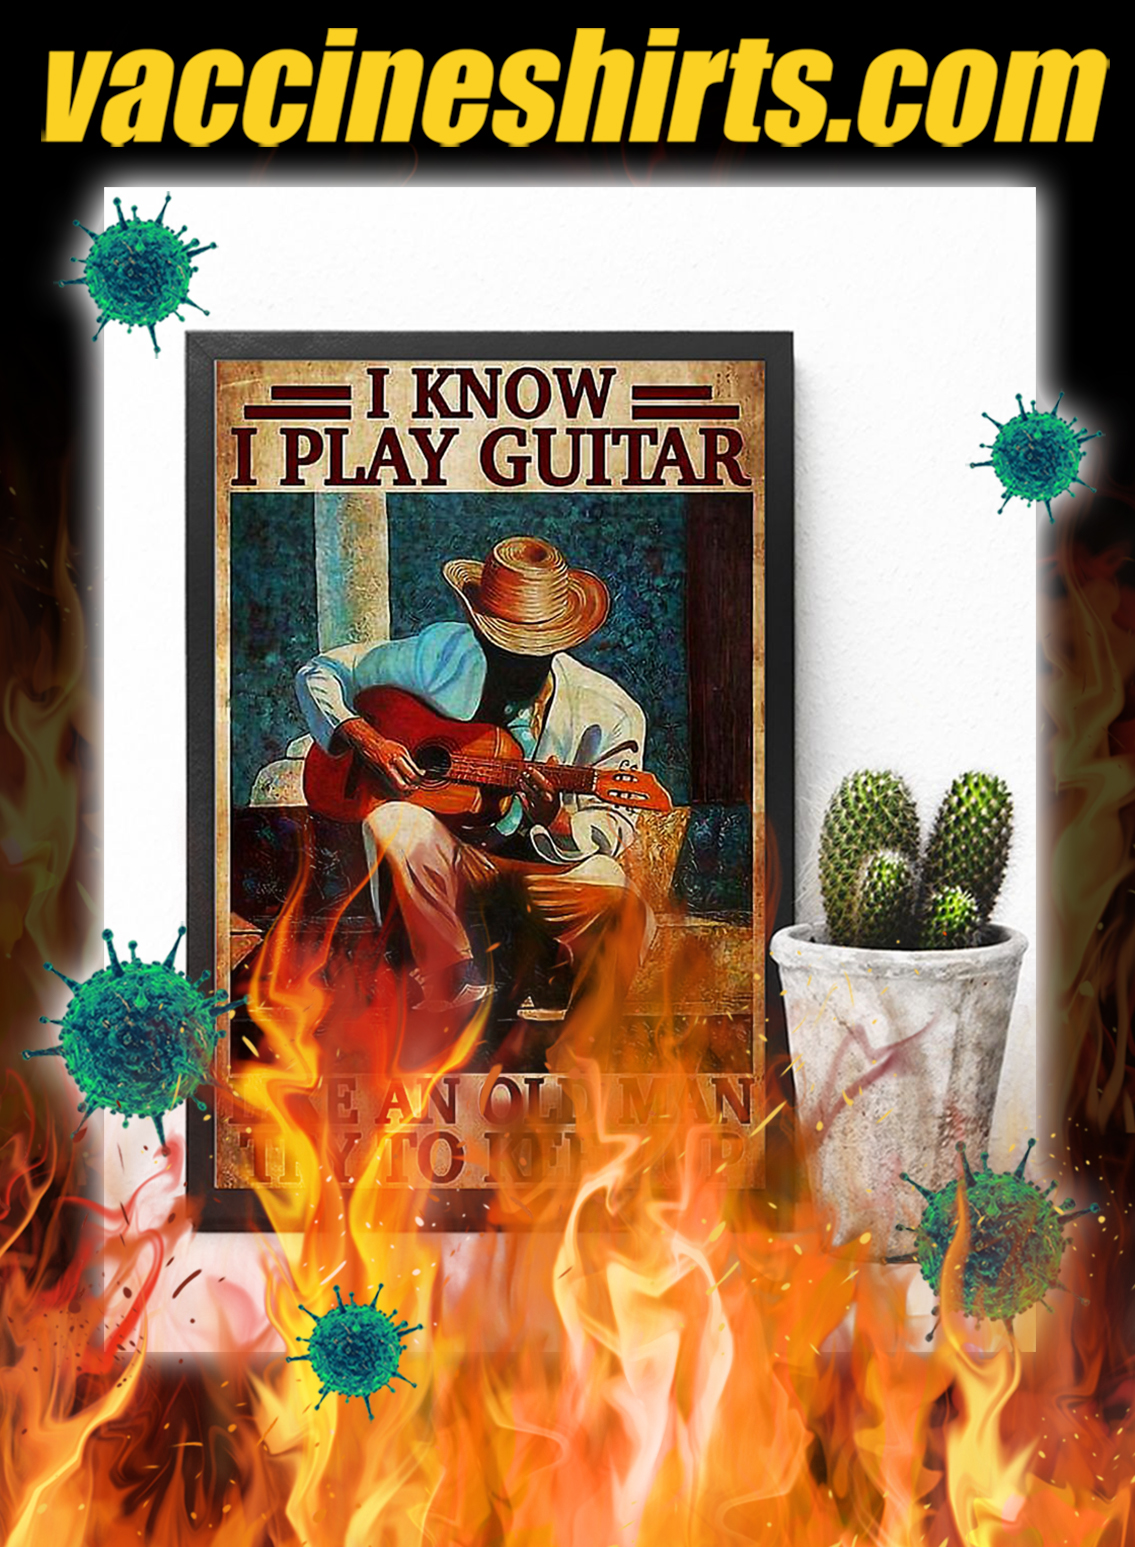 I know i play guitar like an old man try to keep up poster- A4